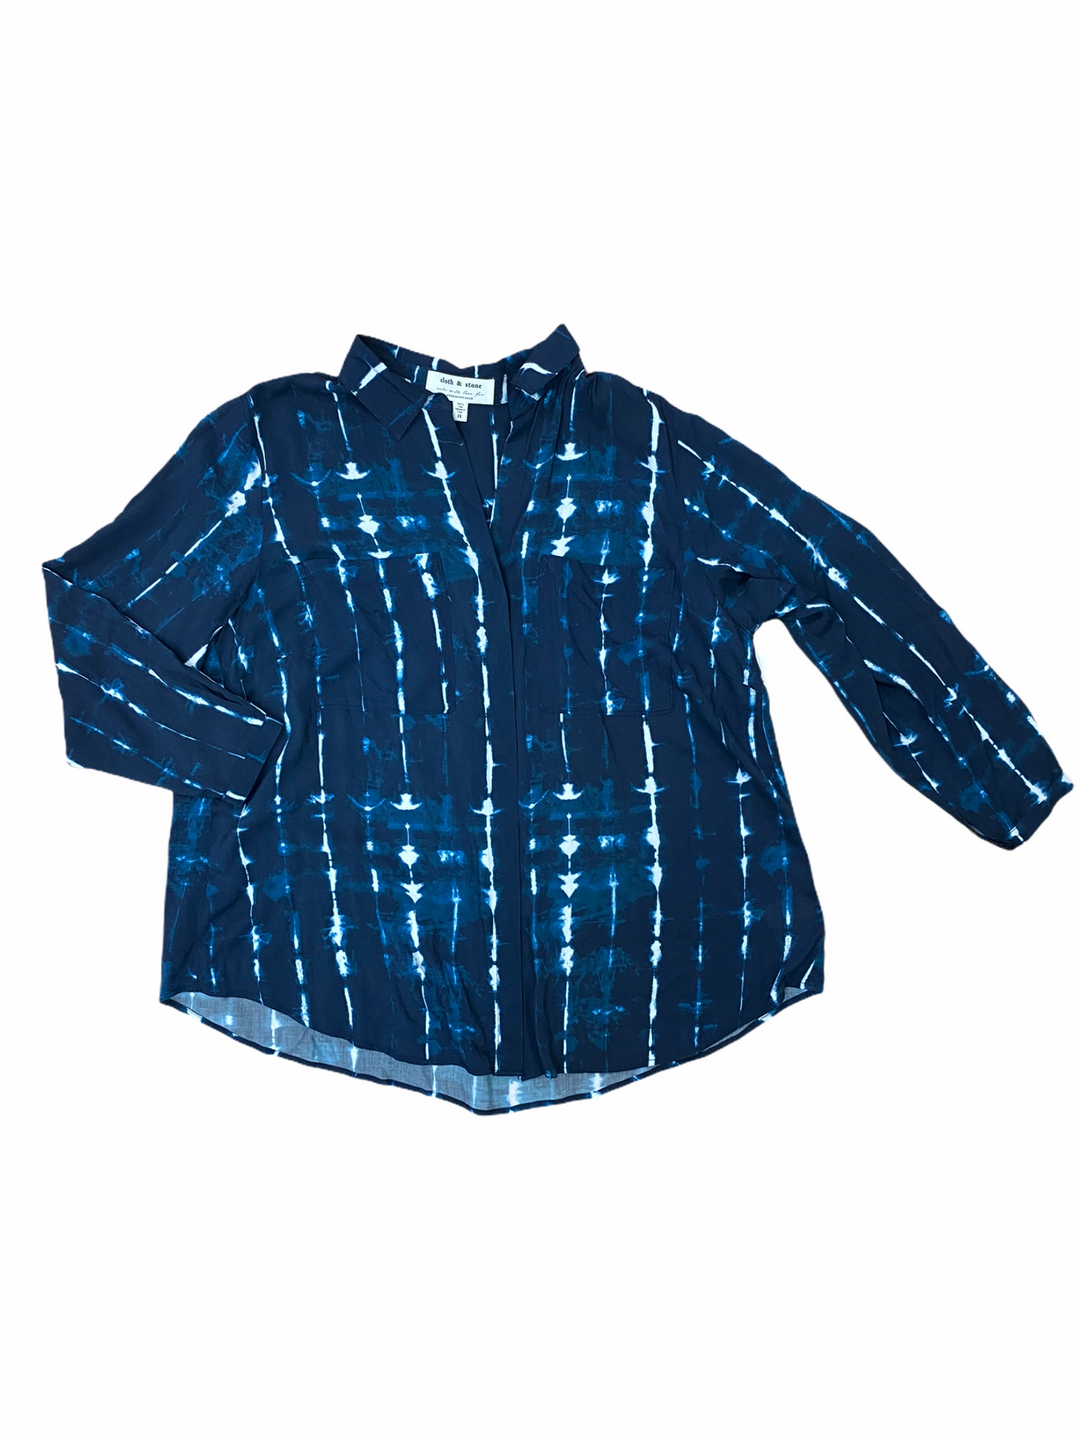 Primary Photo - BRAND: CLOTH AND STONE <BR>STYLE: TOP LONG SLEEVE <BR>COLOR: BLUE <BR>SIZE: 1X <BR>SKU: 223-22393-5127